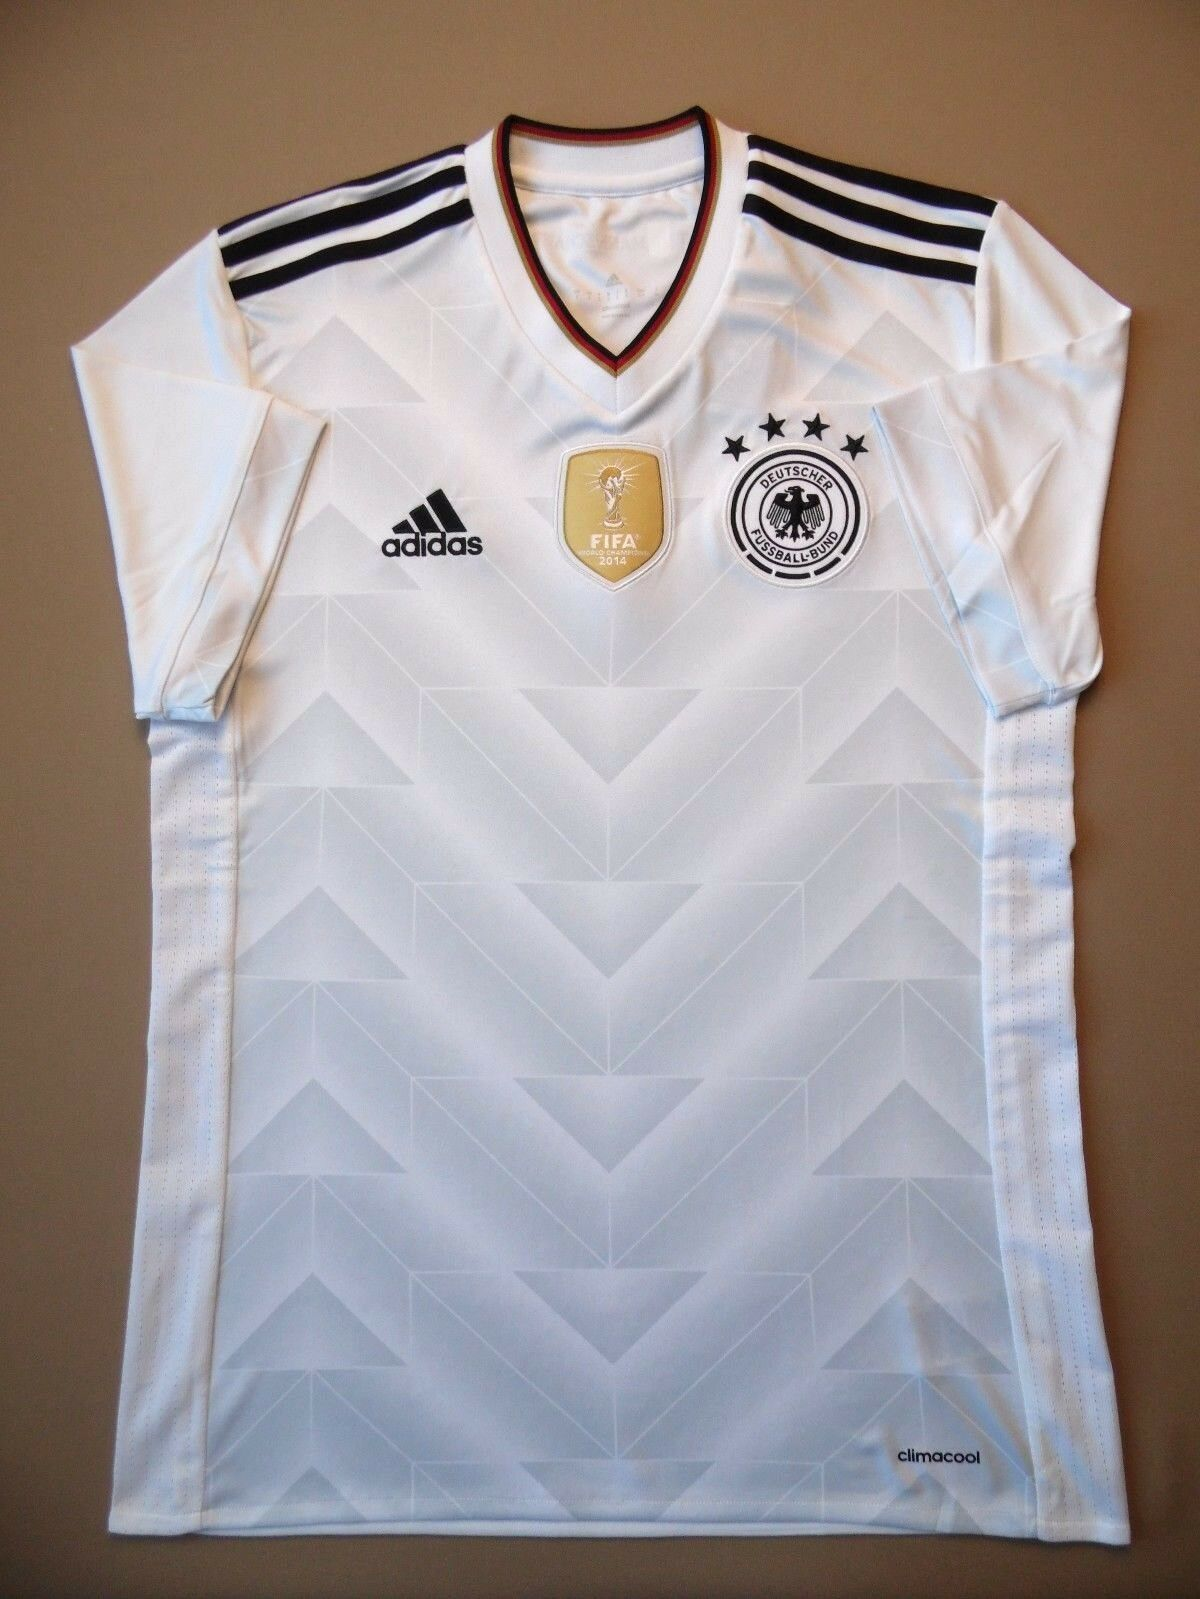 Germany home jersey 2017 HOME Shirt Trikot ADIDAS B47873 Confed Cup 5+ 5